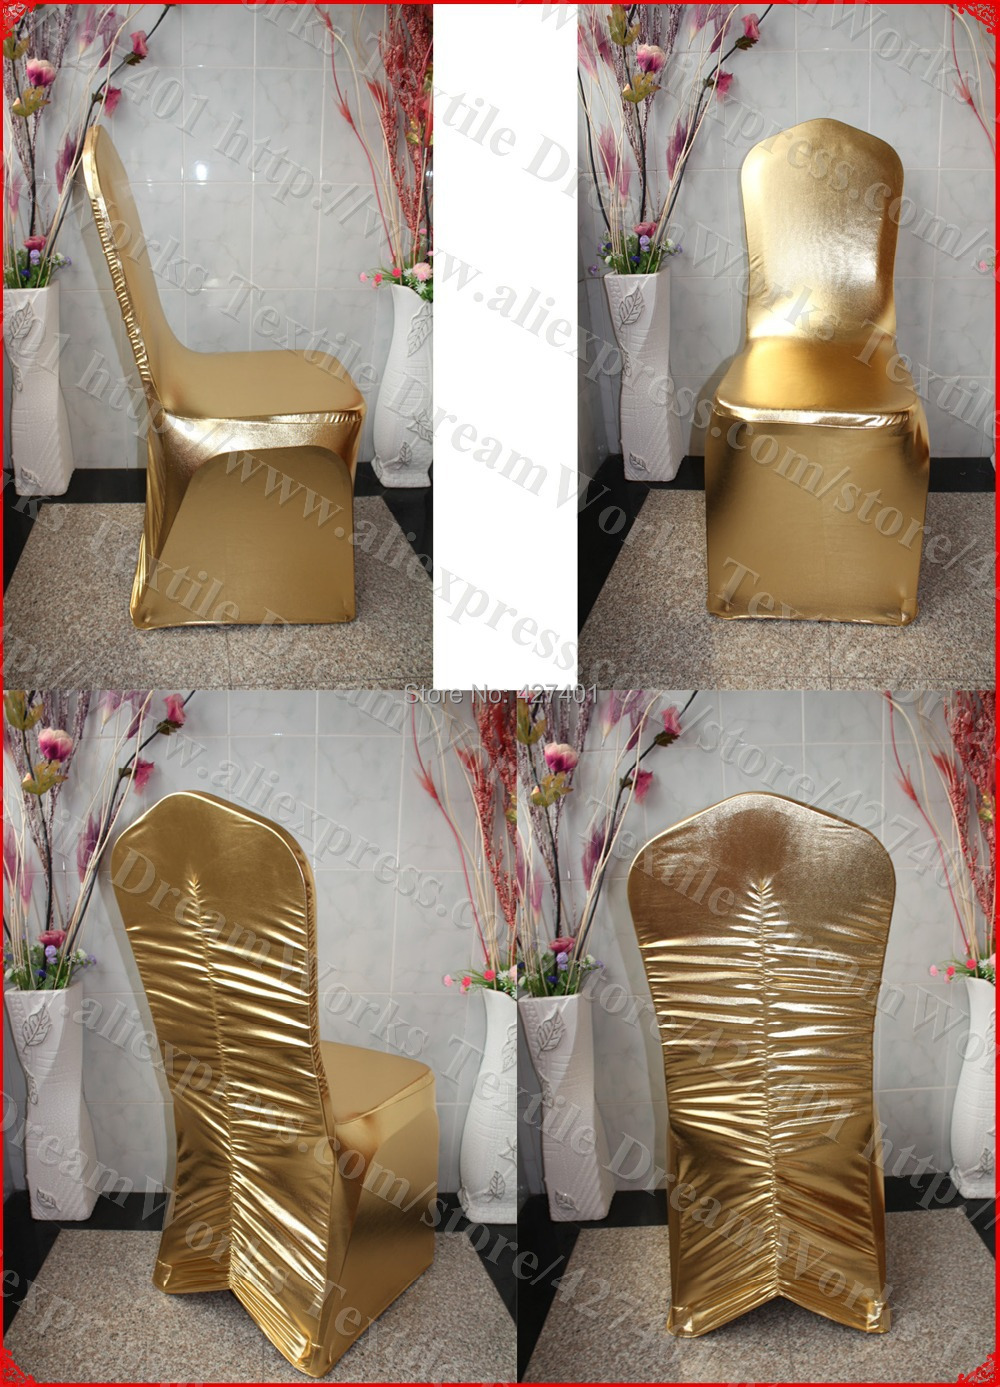 metal chair covers wood padded folding chairs gold color spandex back ruffled cover tablecloth lycra band for wedding party hotel banquet home decoration in from